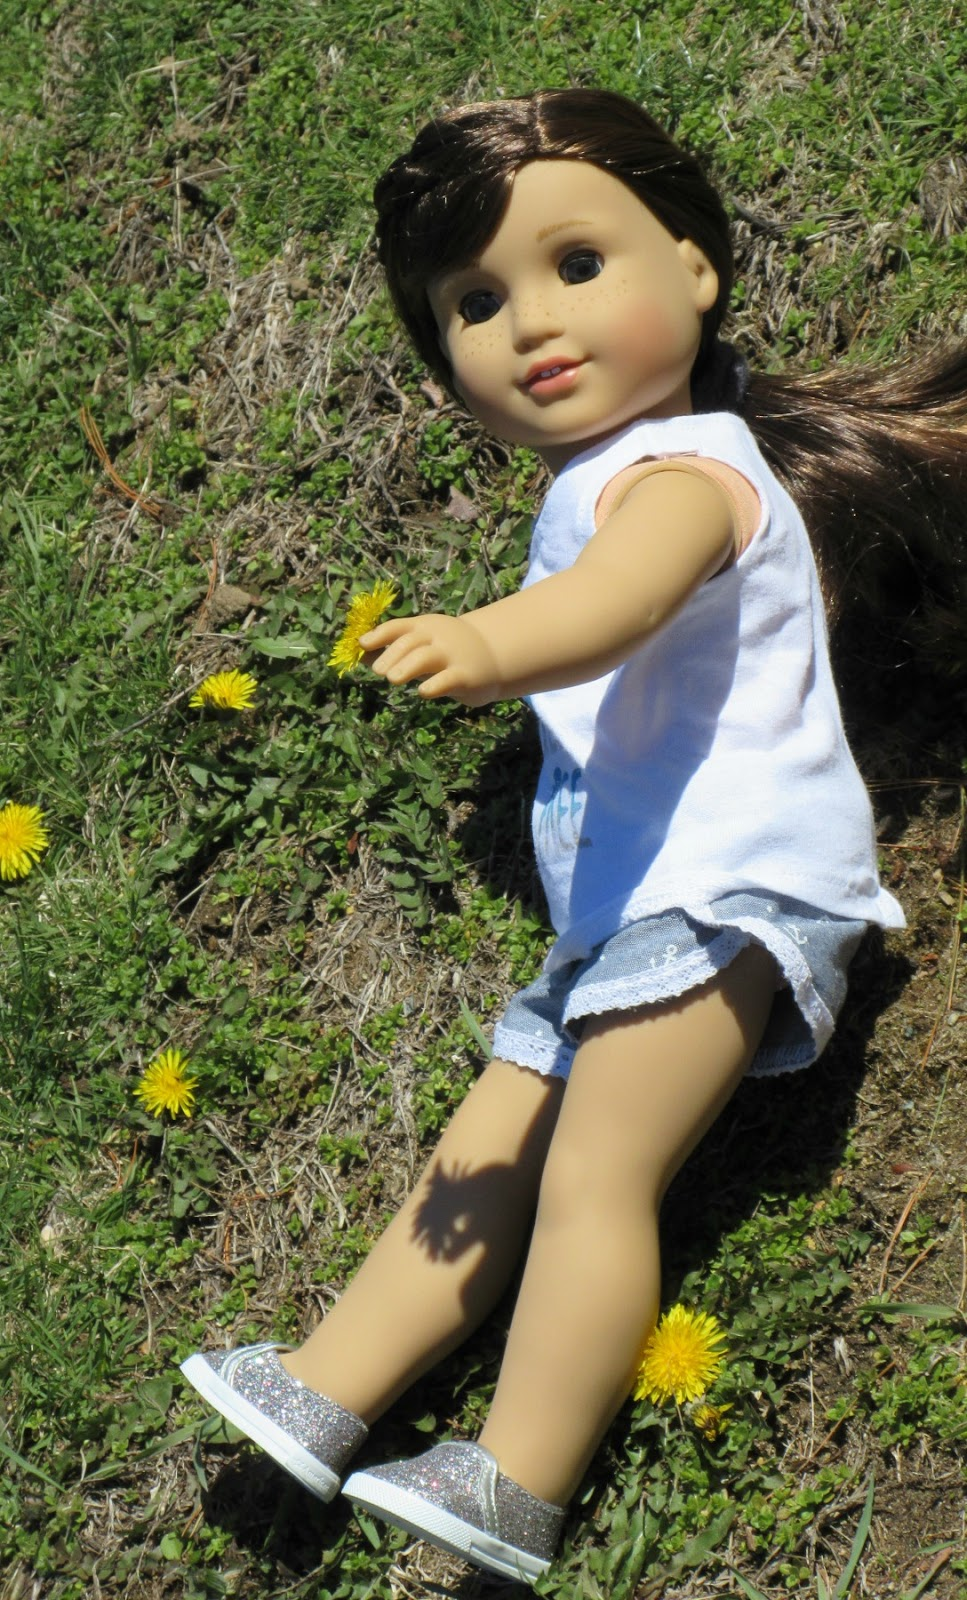 american girl doll outdoors.jpg